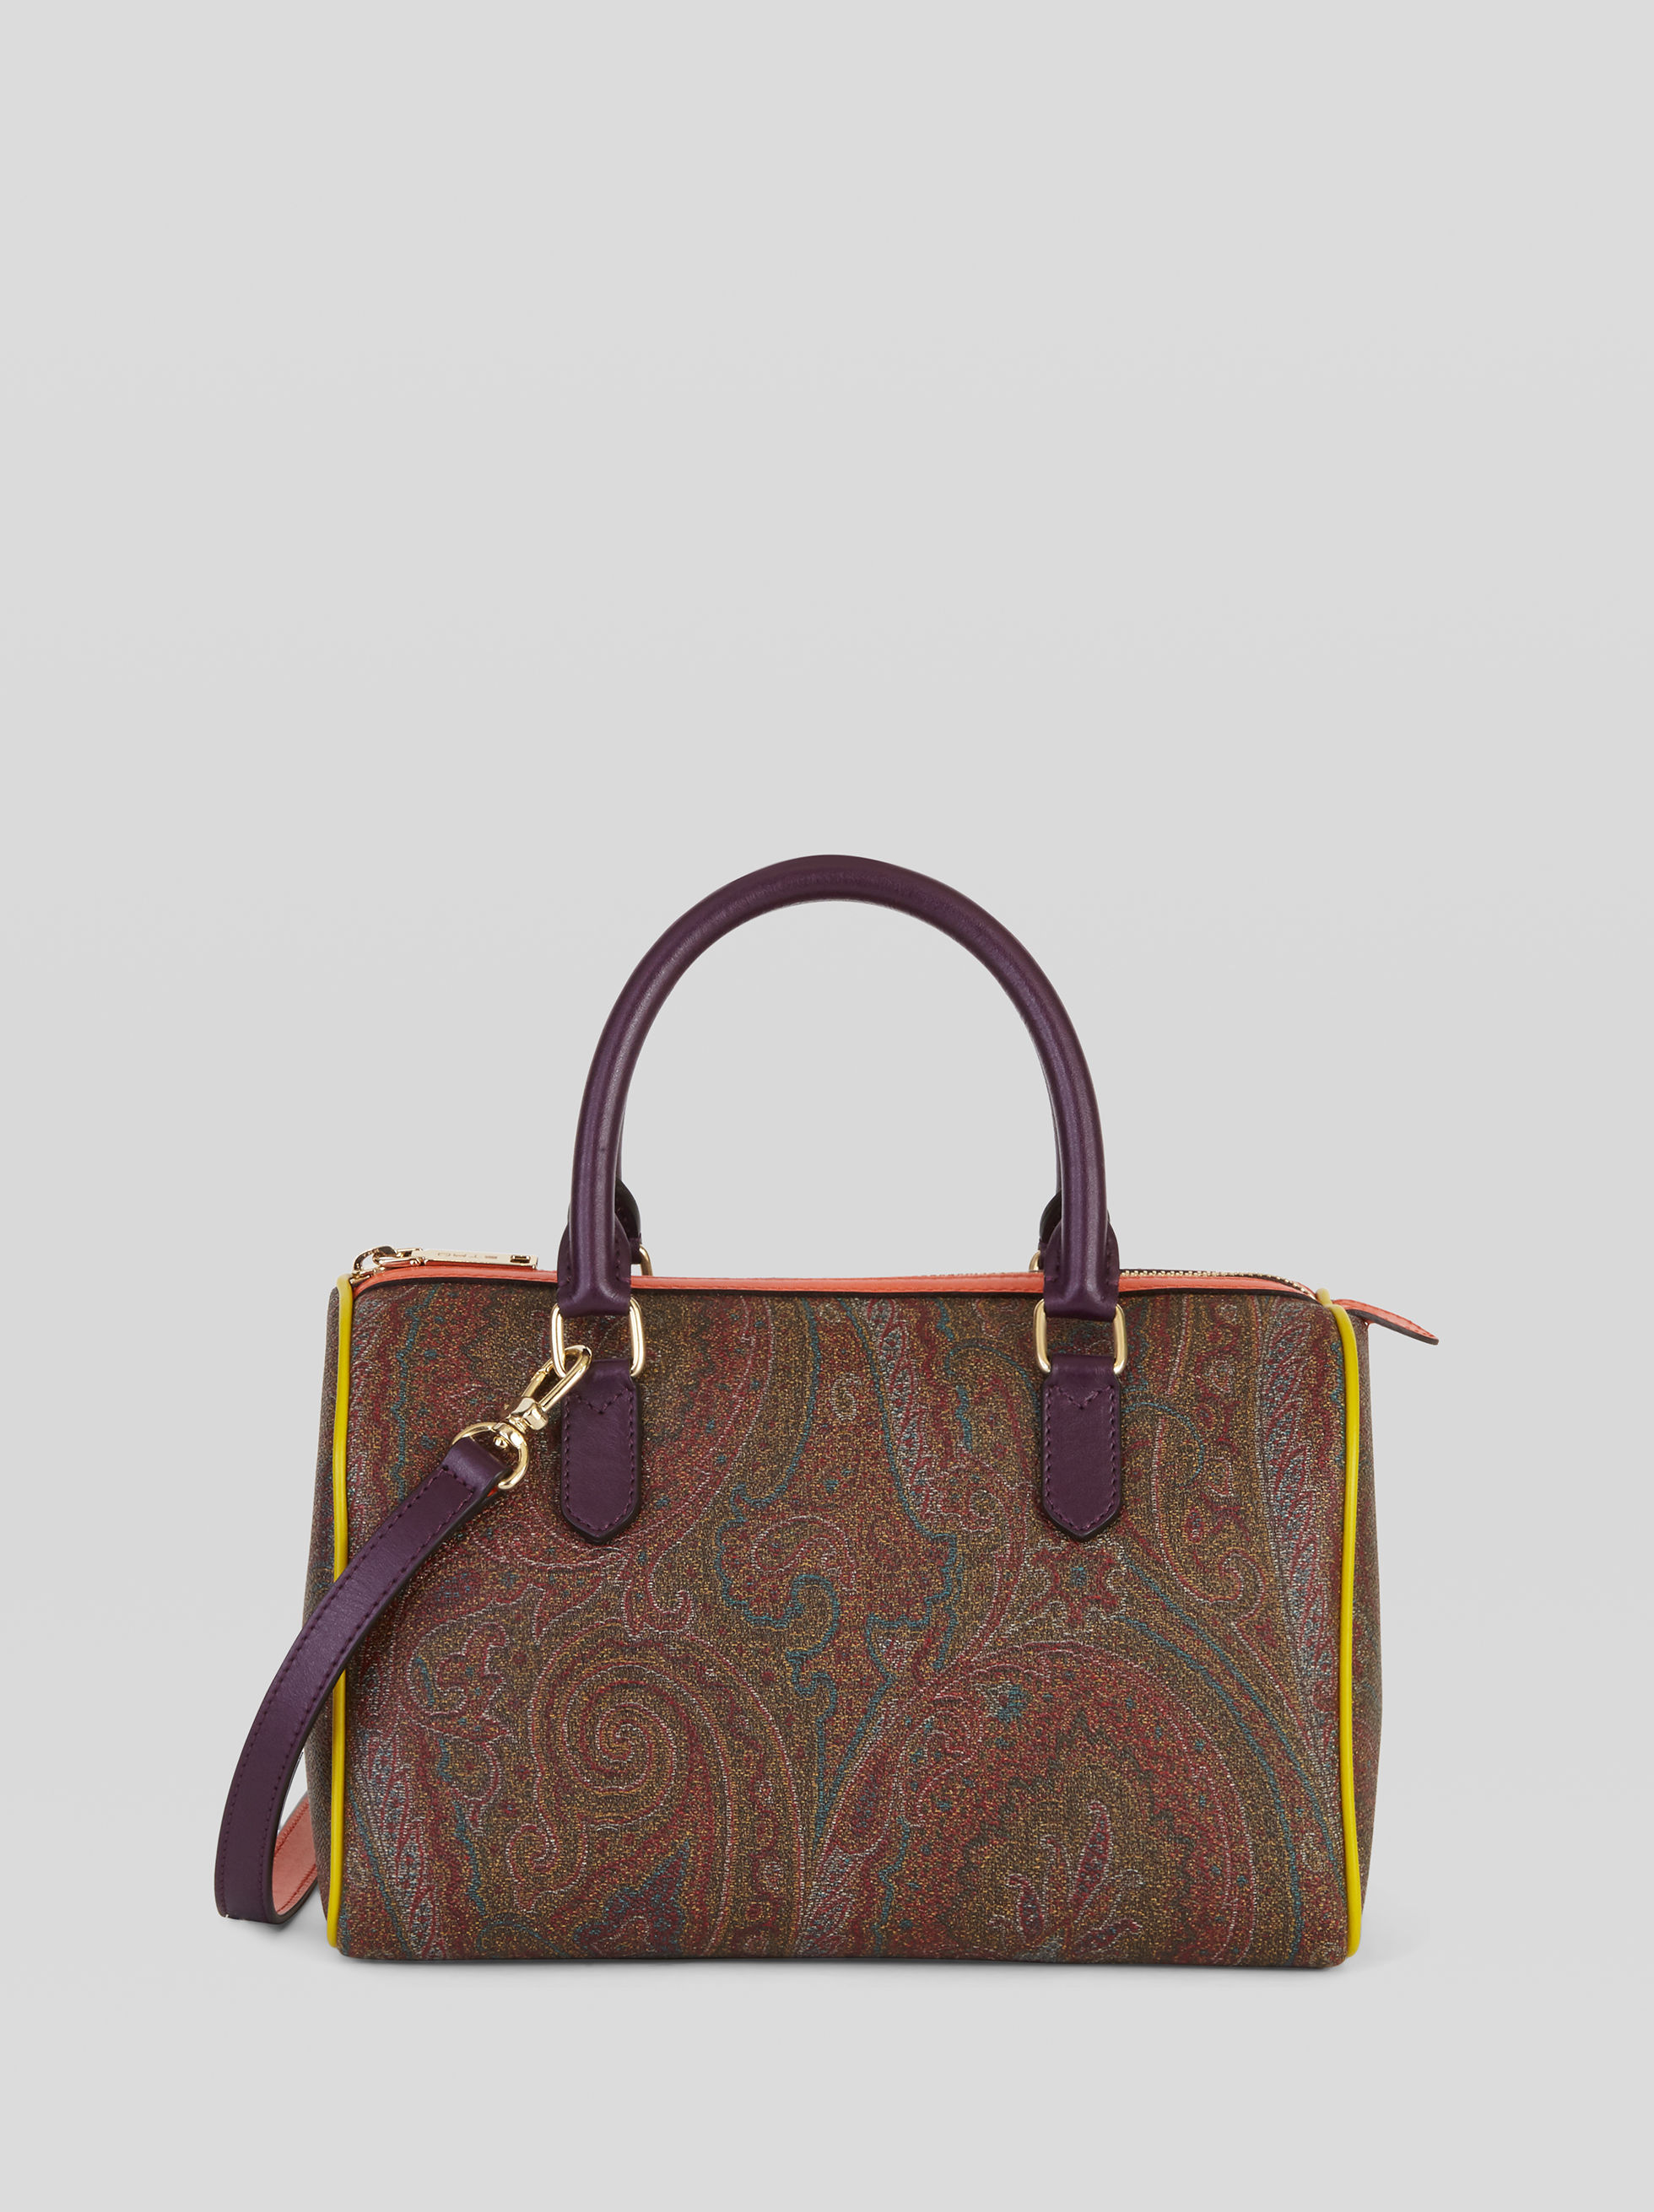 PAISLEY BOSTON BAG WITH MULTICOLORED DETAILING